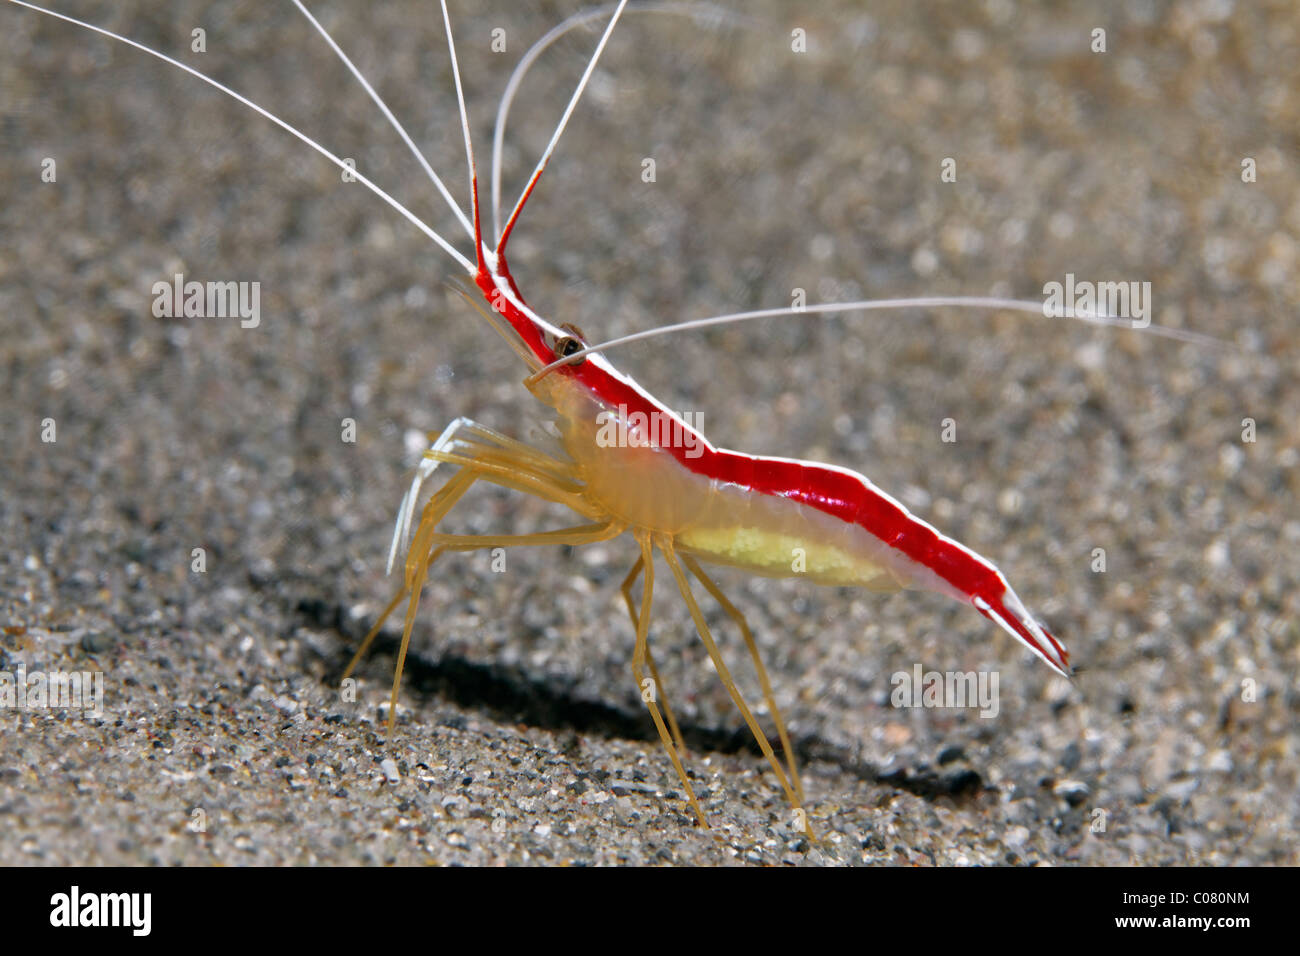 Scarlet-Striped Cleaner Shrimp (Lysmata grabhami), on sandy bottom, Saint Lucia, St. Lucia Island, Windward Islands - Stock Image